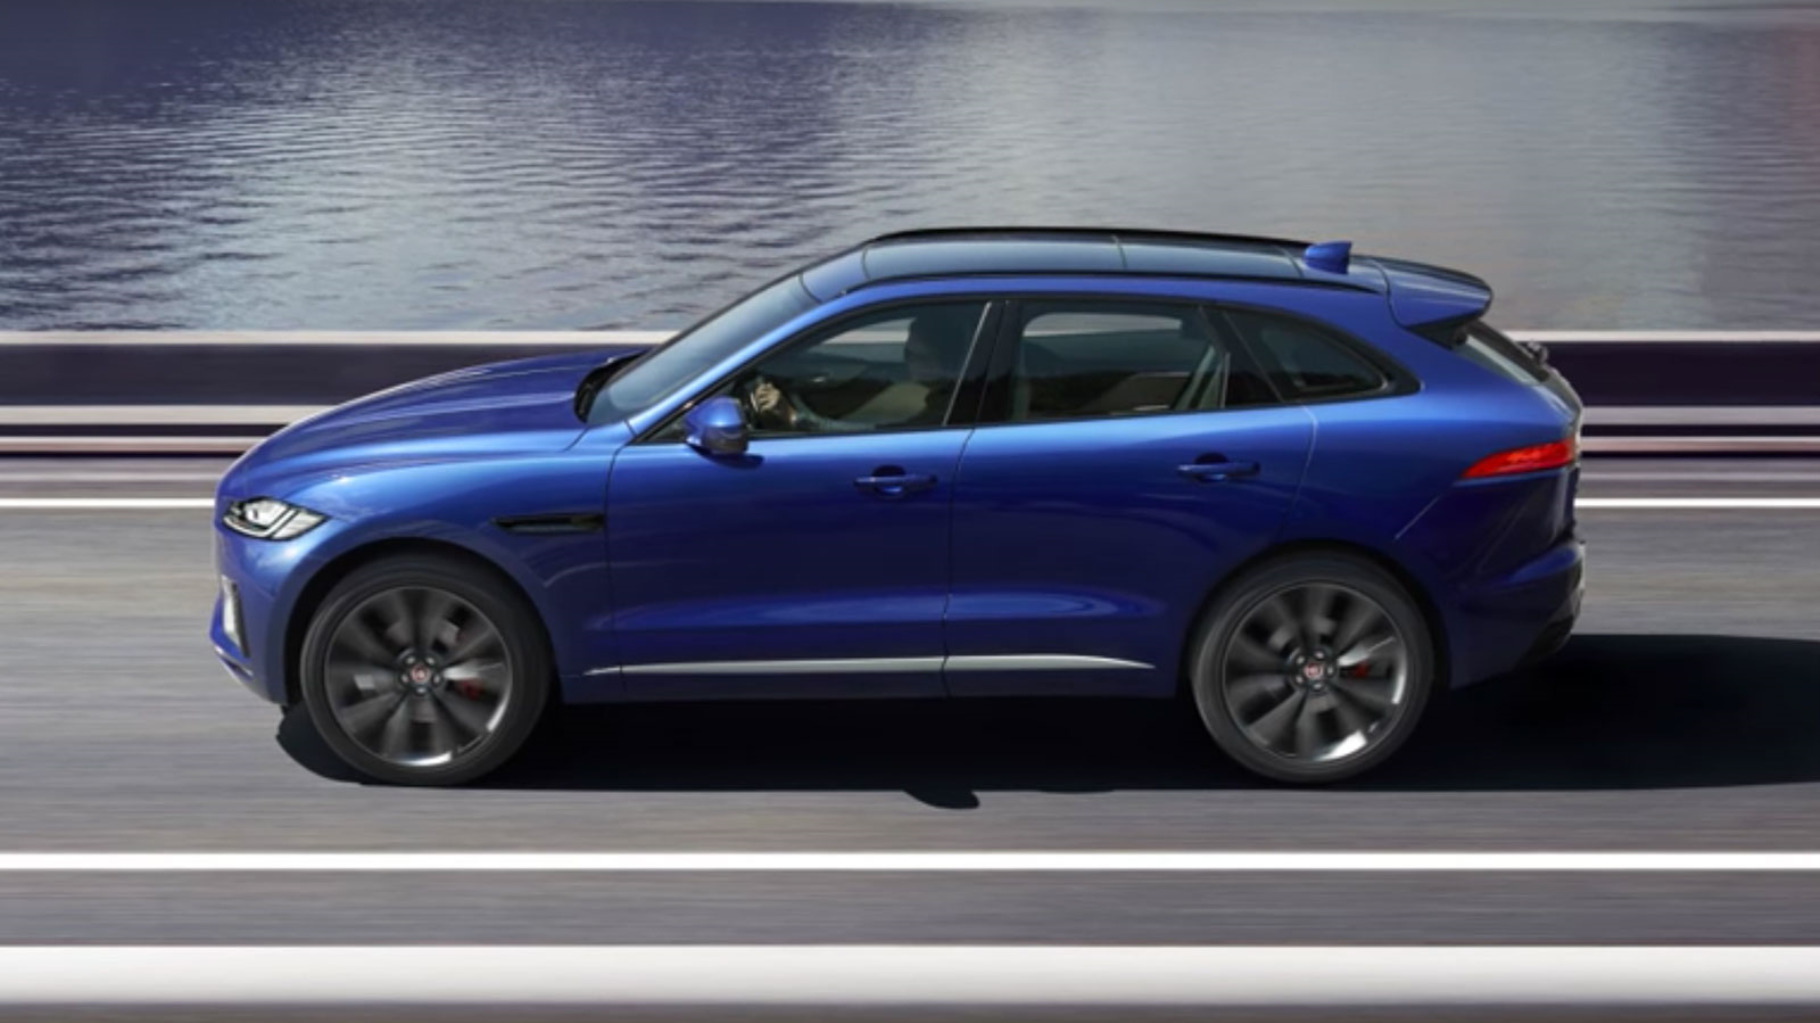 A jaguar F-Pace driving along a road by the sea.